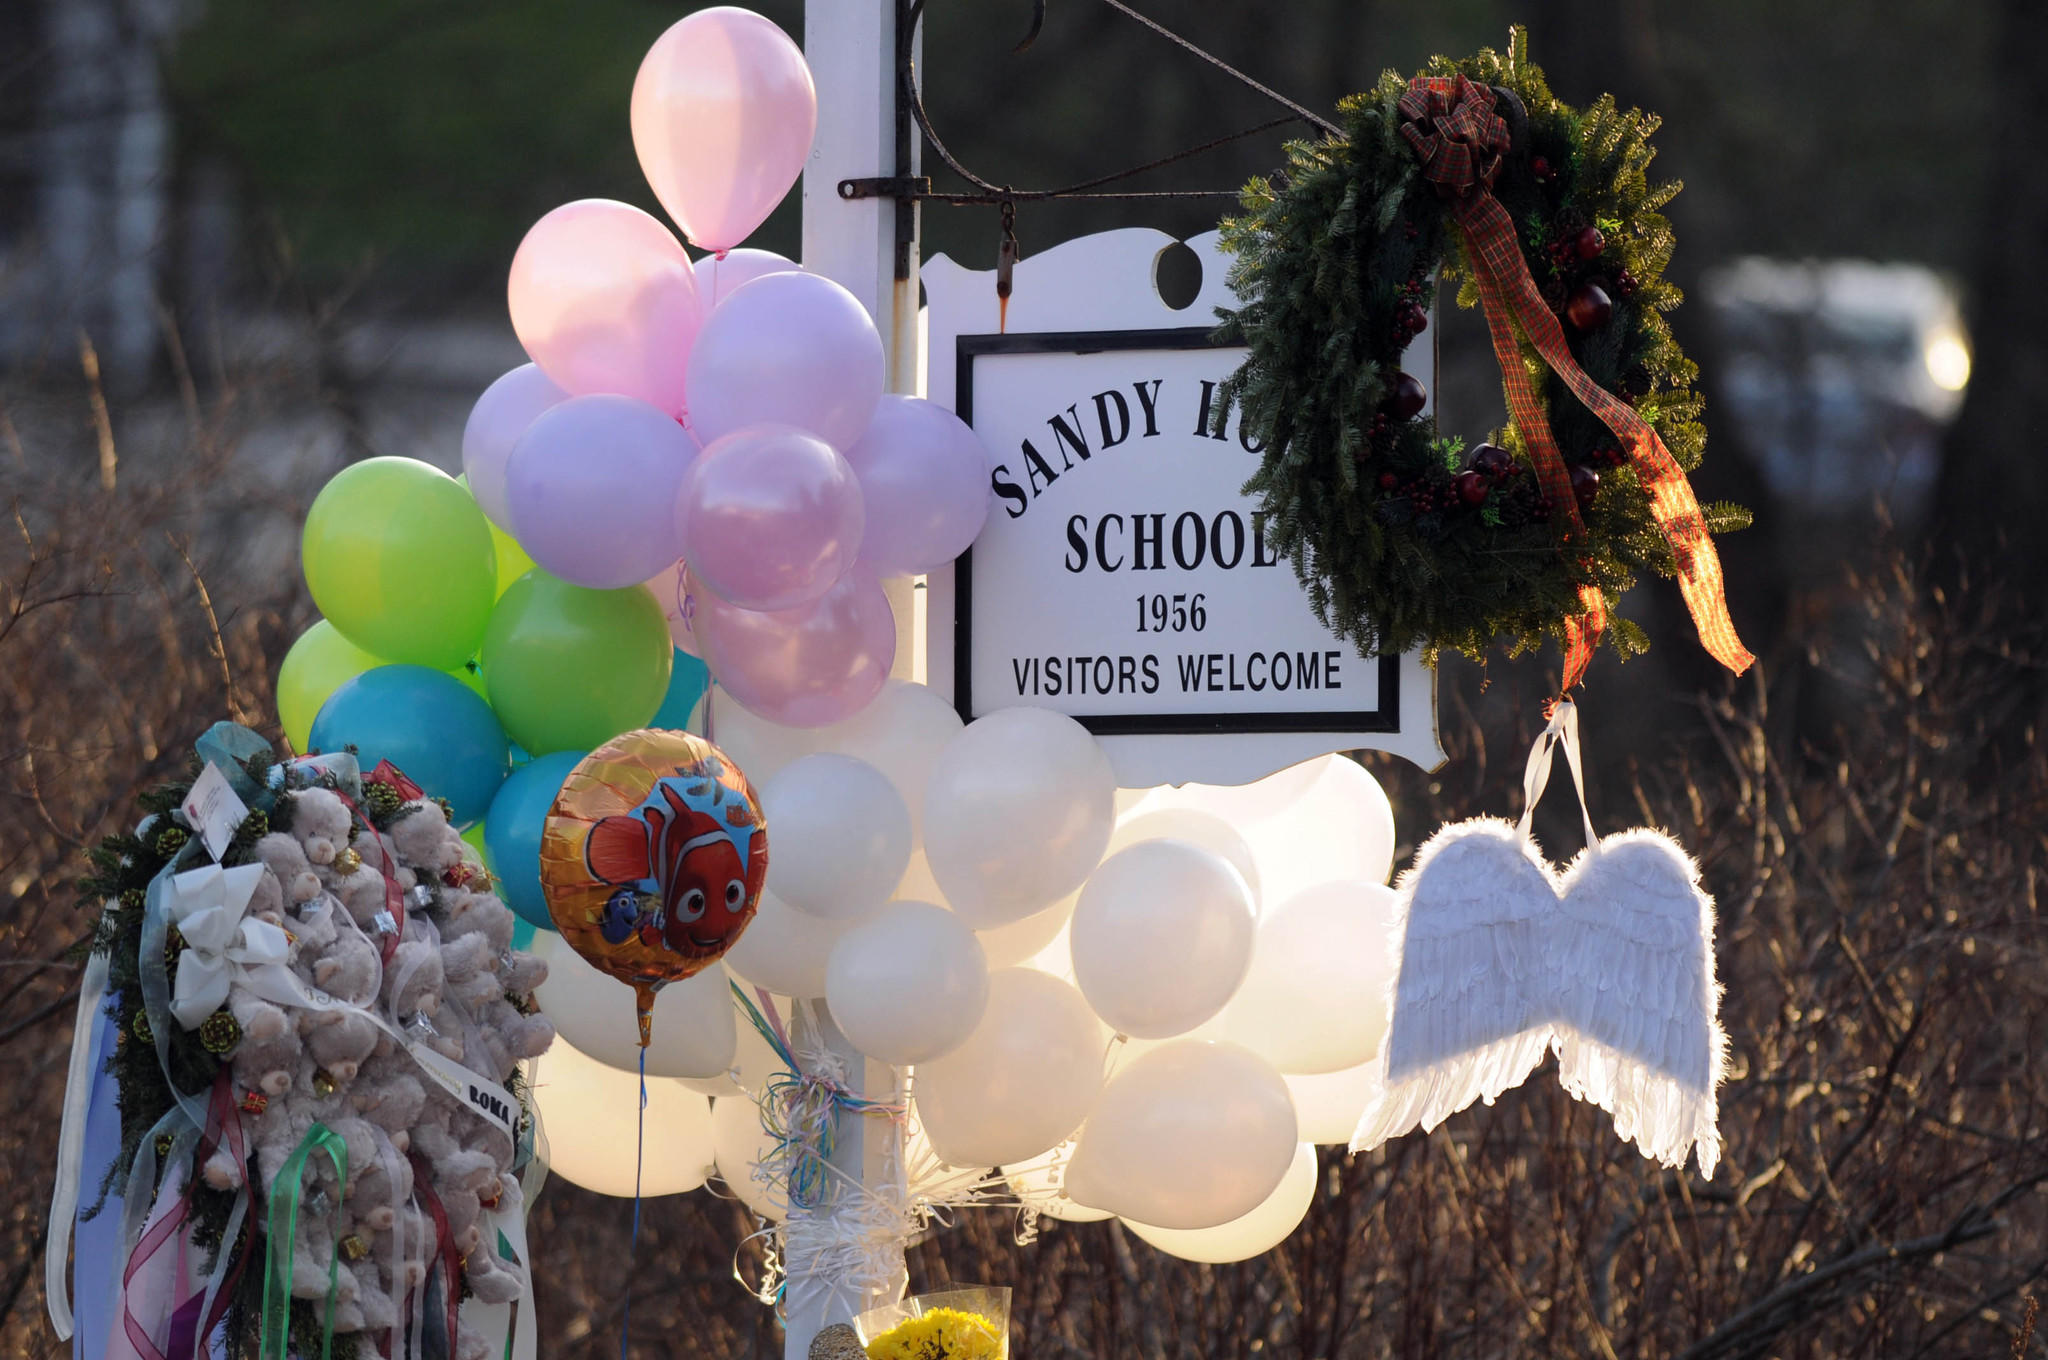 Mourners came Saturday to leave flowers, teddy bears, candles, balloons and a pair of angle wings at the Sandy Hook School sign marking the entrance to the school grounds. The makeshift memorial grew as a steady stream of mourners visited the site throughout the day.